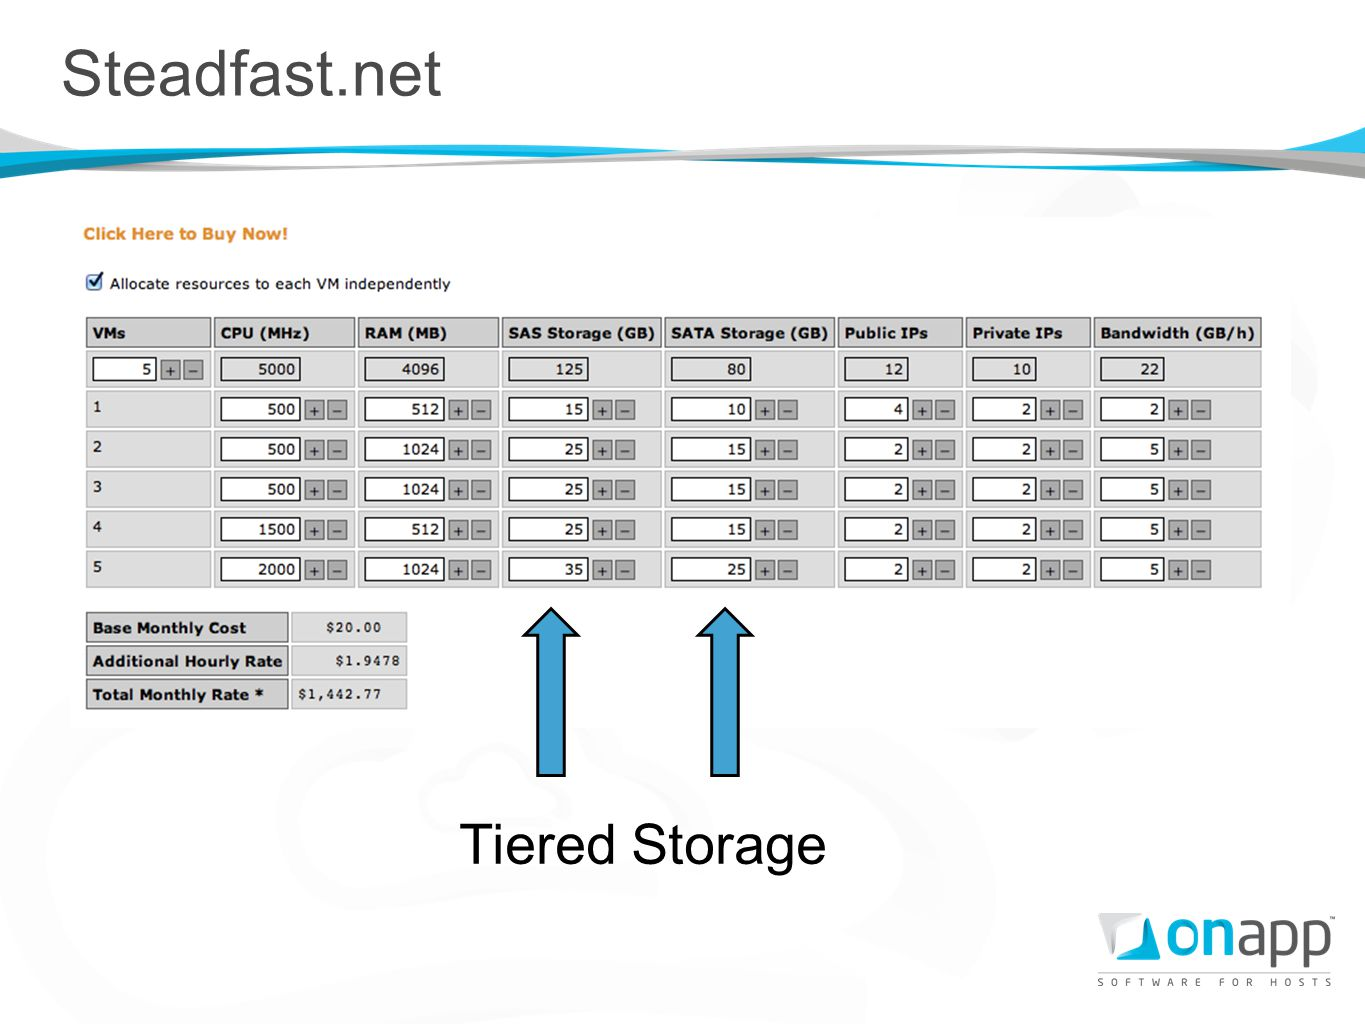 Steadfast.net Tiered Storage